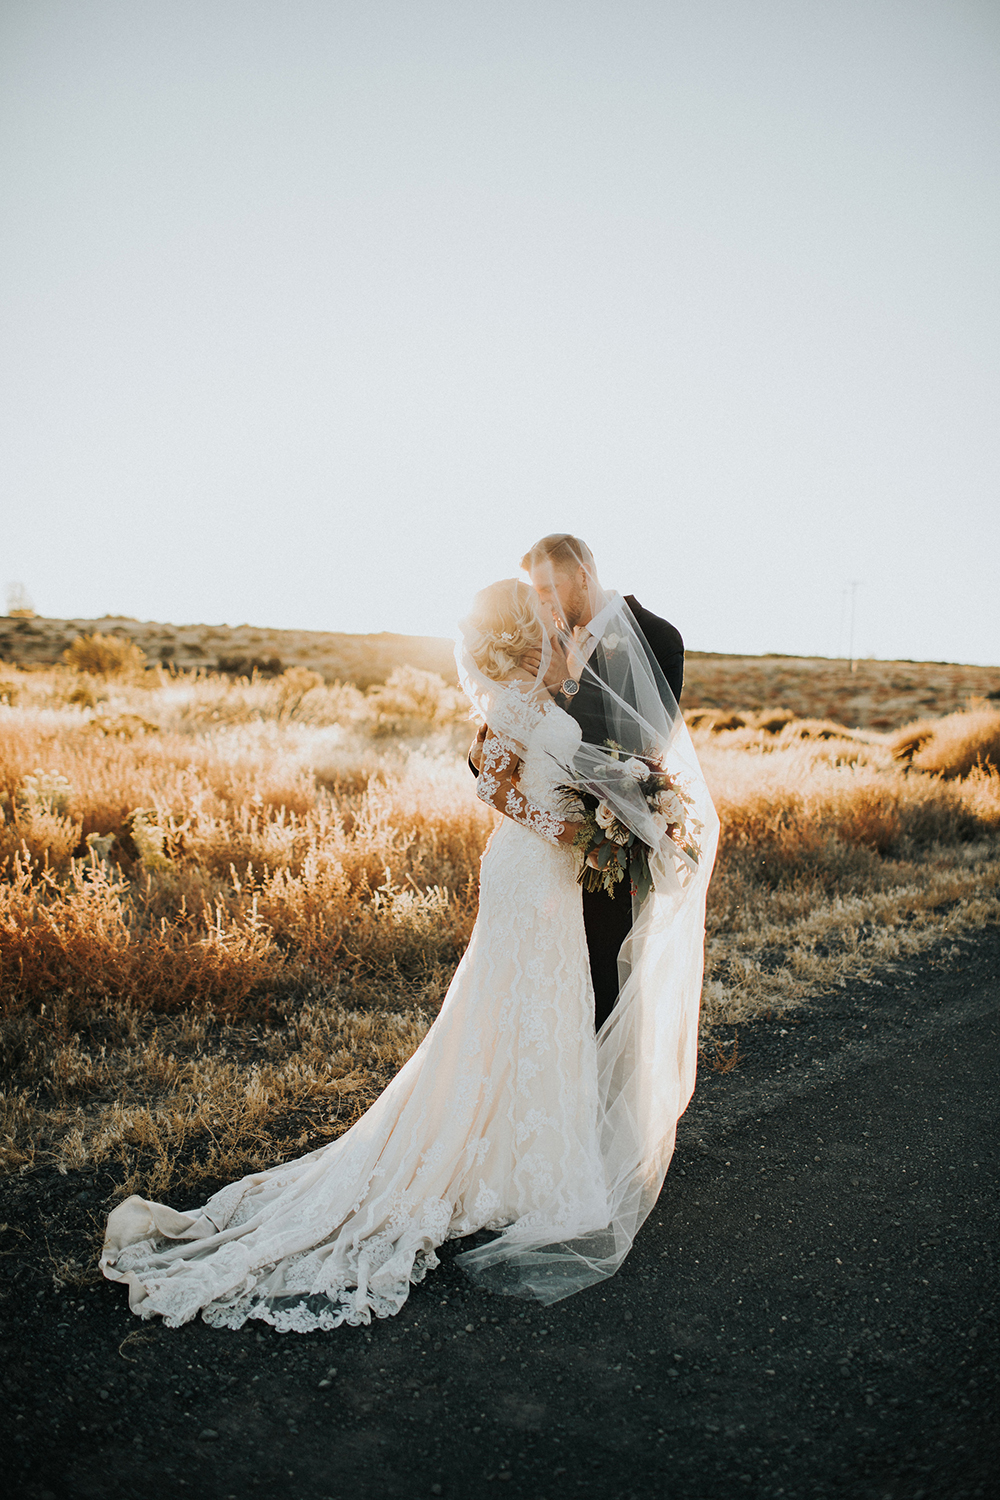 wedding photography photo by alex lasota httpruffledblogcomautumn